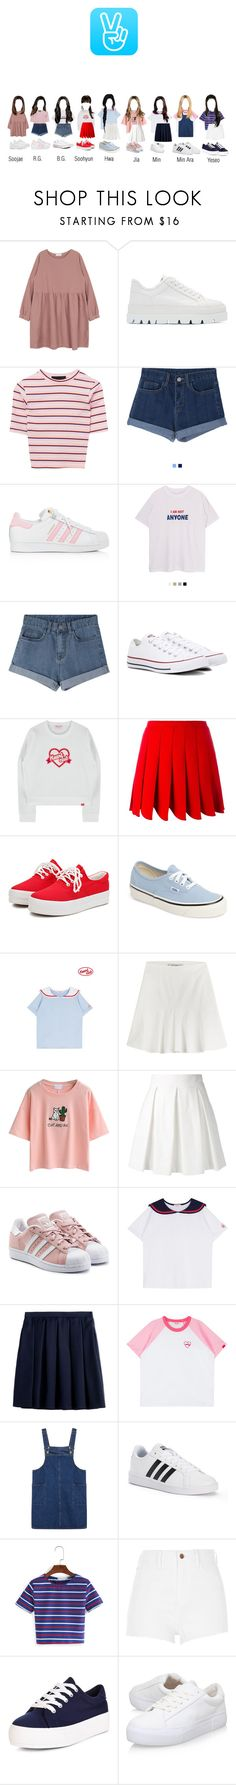 """Rexanne x namsan tower's v-app"" by rexanne-official ❤ liked on Polyvore featuring MM6 Maison Margiela, adidas, Converse, Miu Miu, Vans, Etro, WithChic, Boutique Moschino, adidas Originals and Burberry"